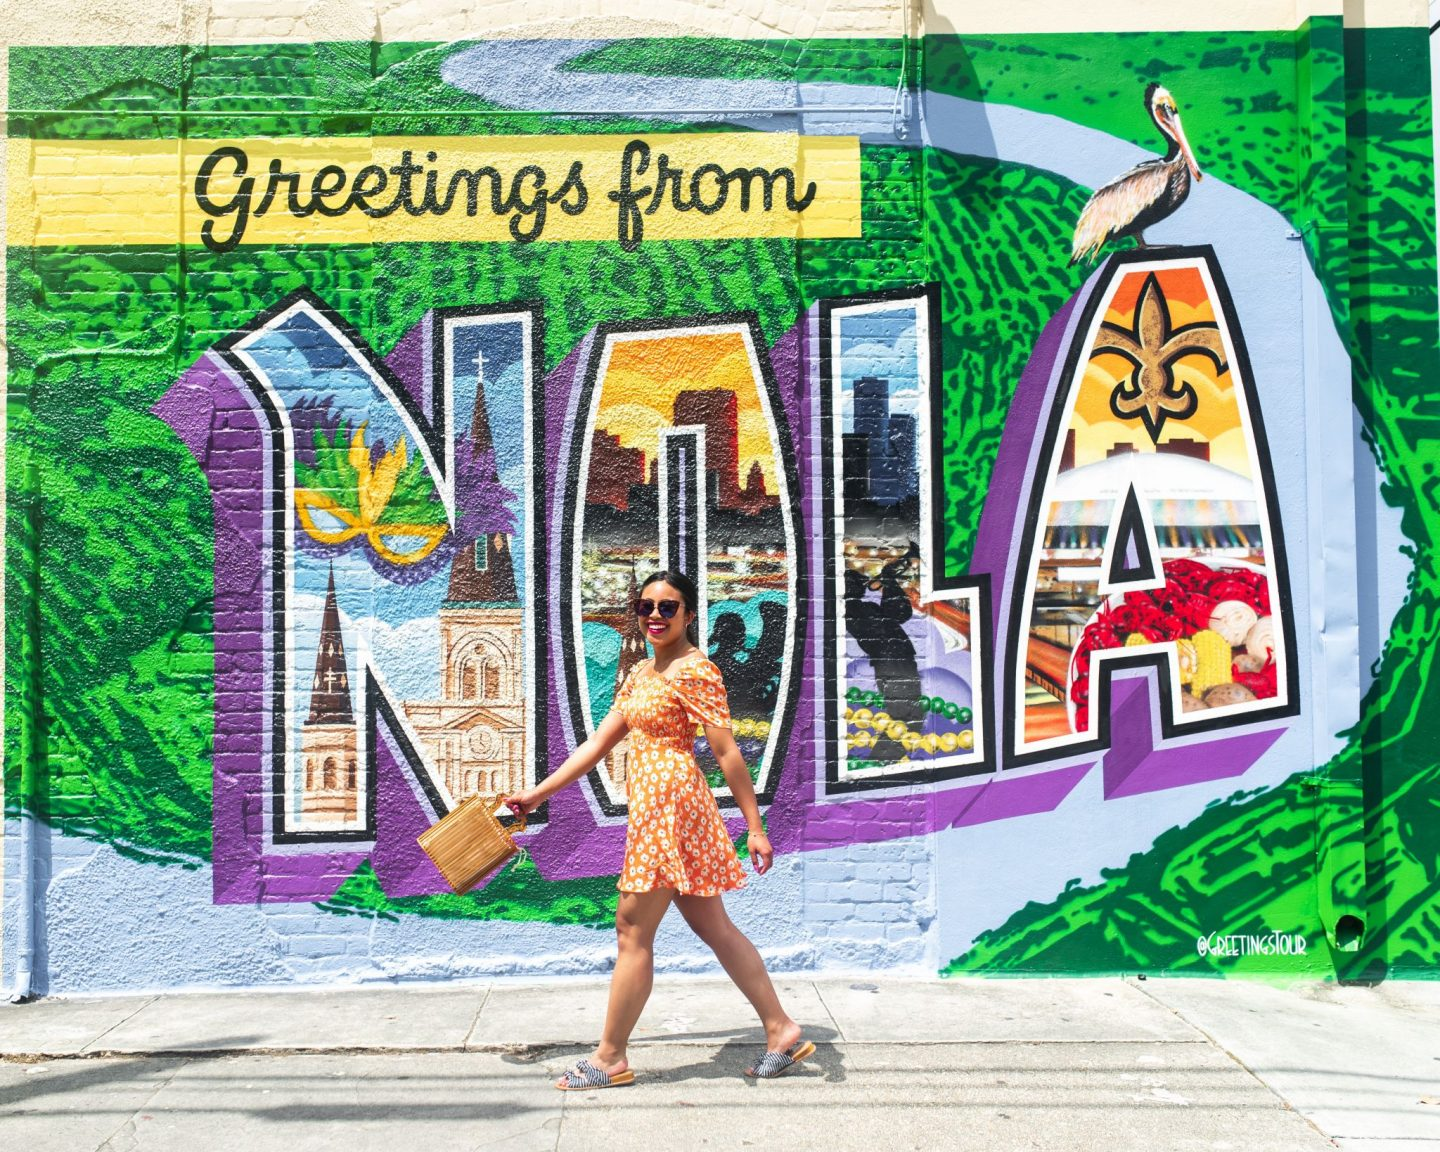 Greetings from NOLA mural - Garden District